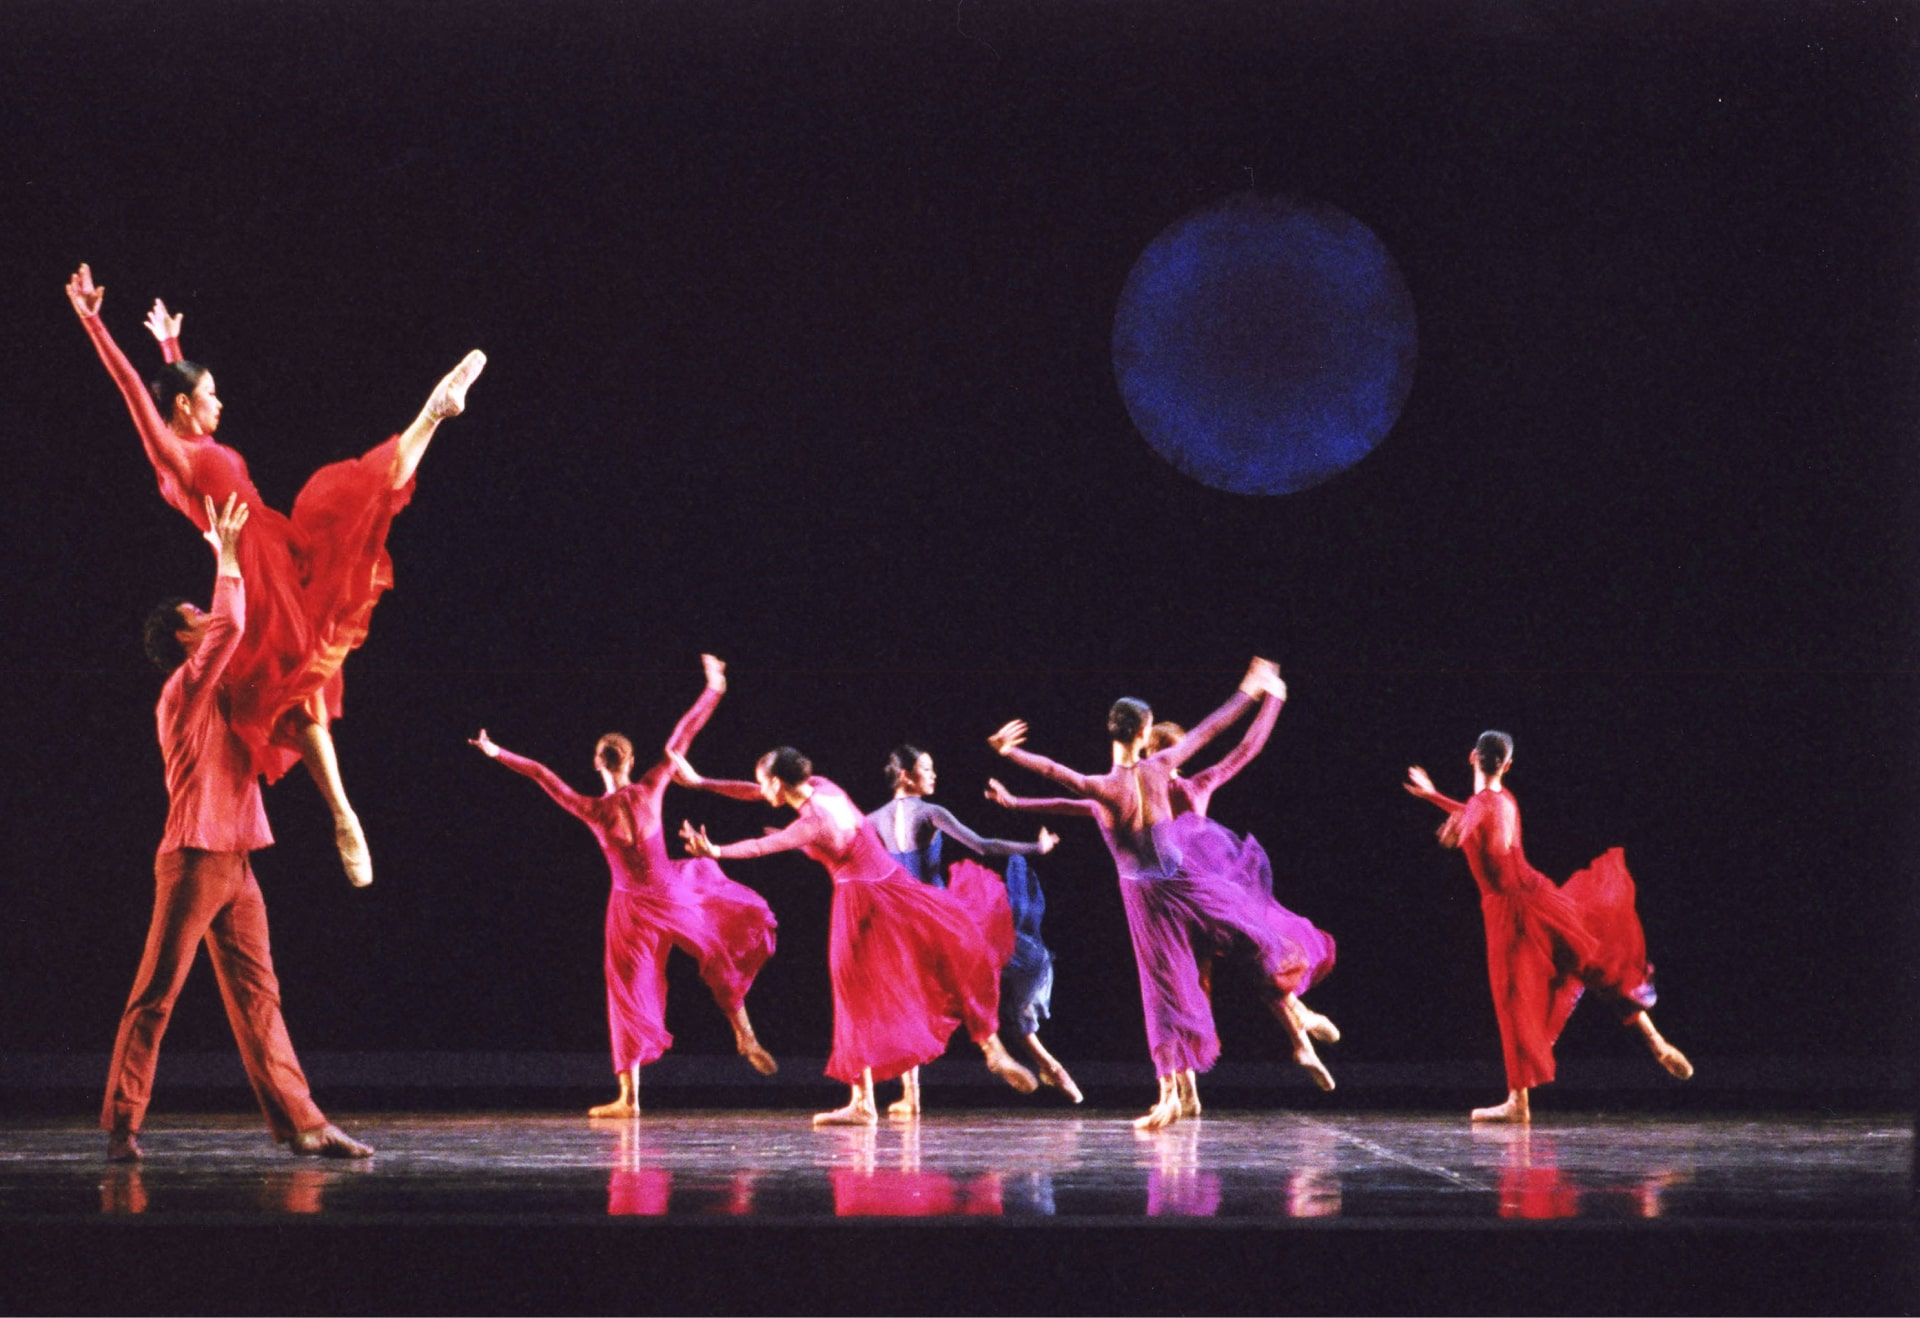 Dancer holds ballerina in red modern outfit aloft, in front of chorus of ballerinas against black sky with blue full moon.